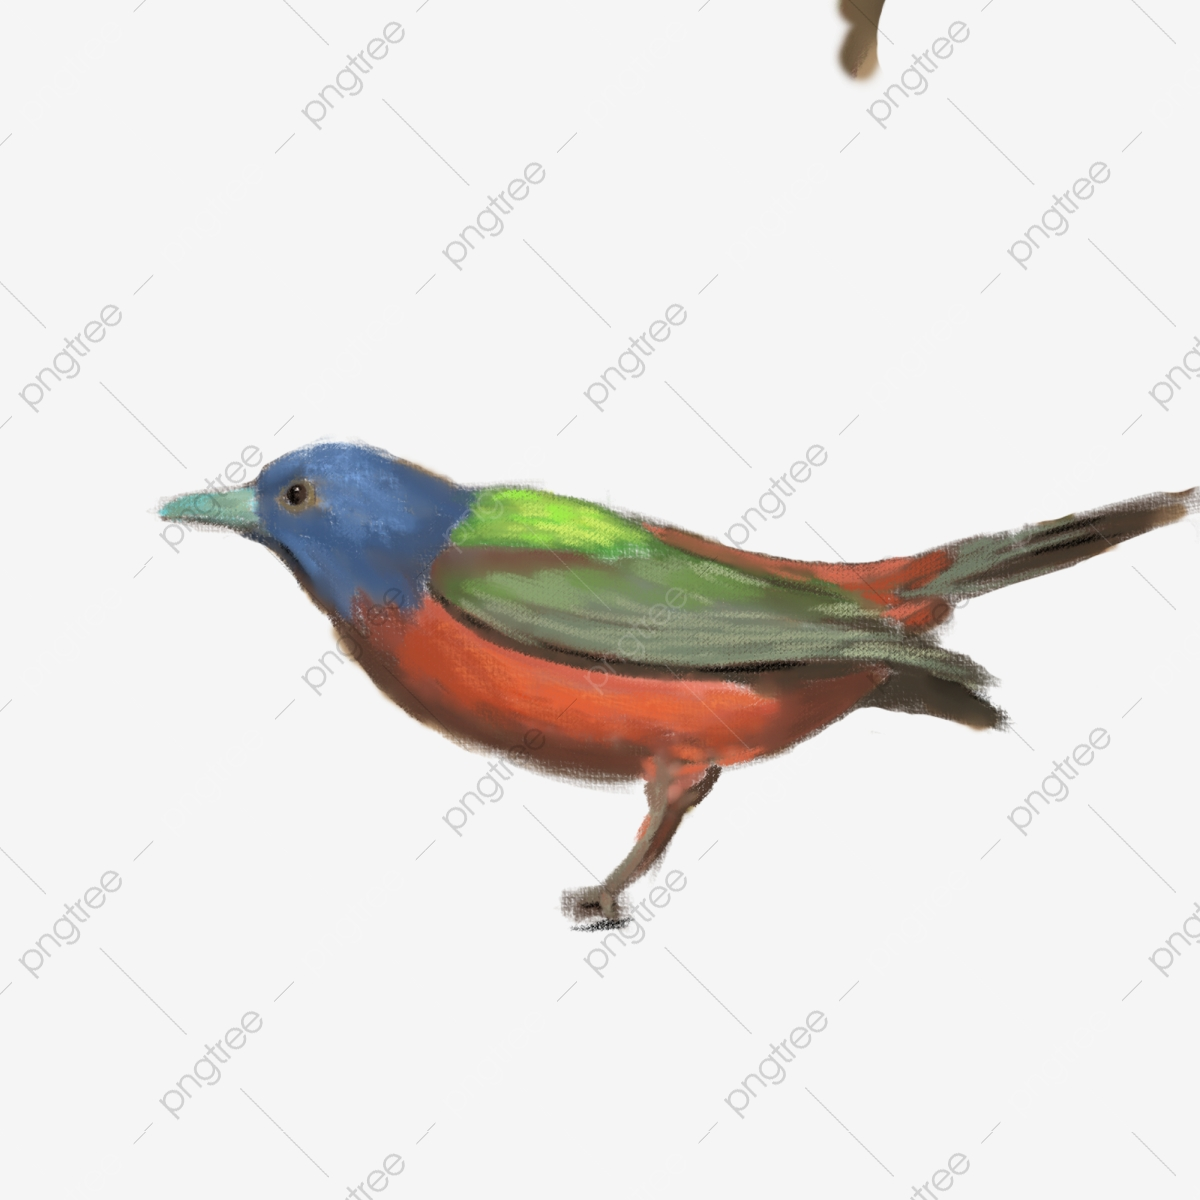 A Cute And Beautiful Bird Little Bird Beautiful Cute Png Transparent Clipart Image And Psd File For Free Download